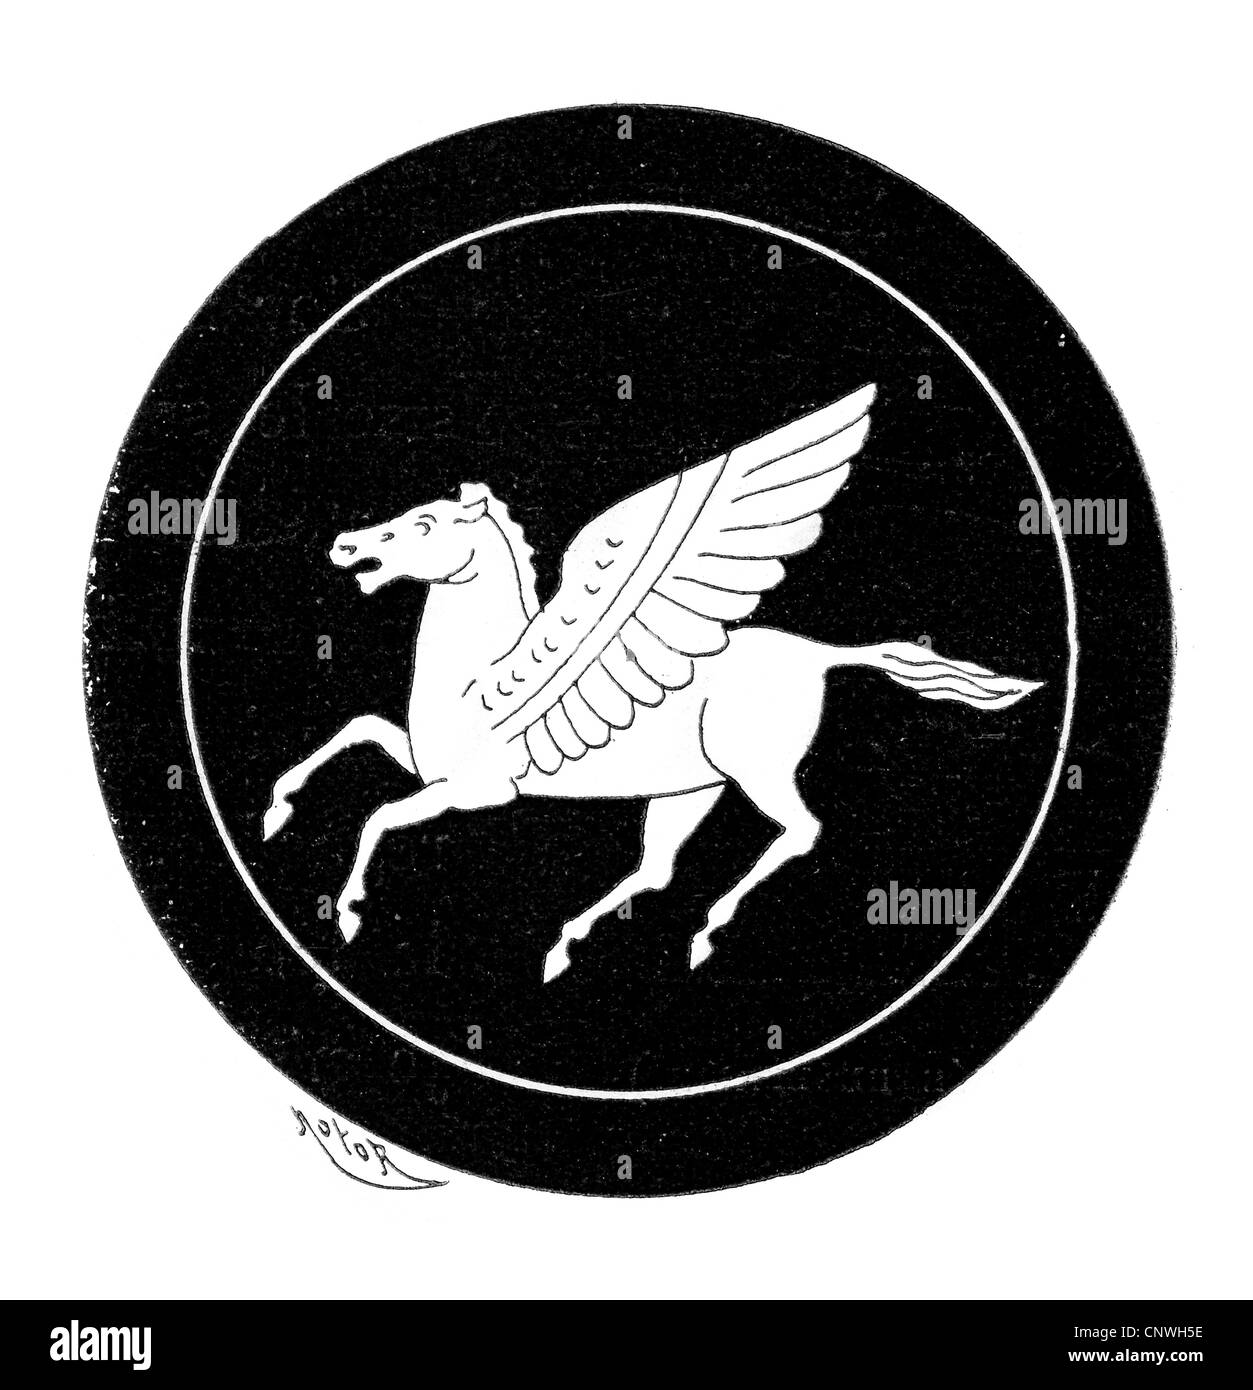 Pegasus the winged horse of ancient Greek legend - Stock Image